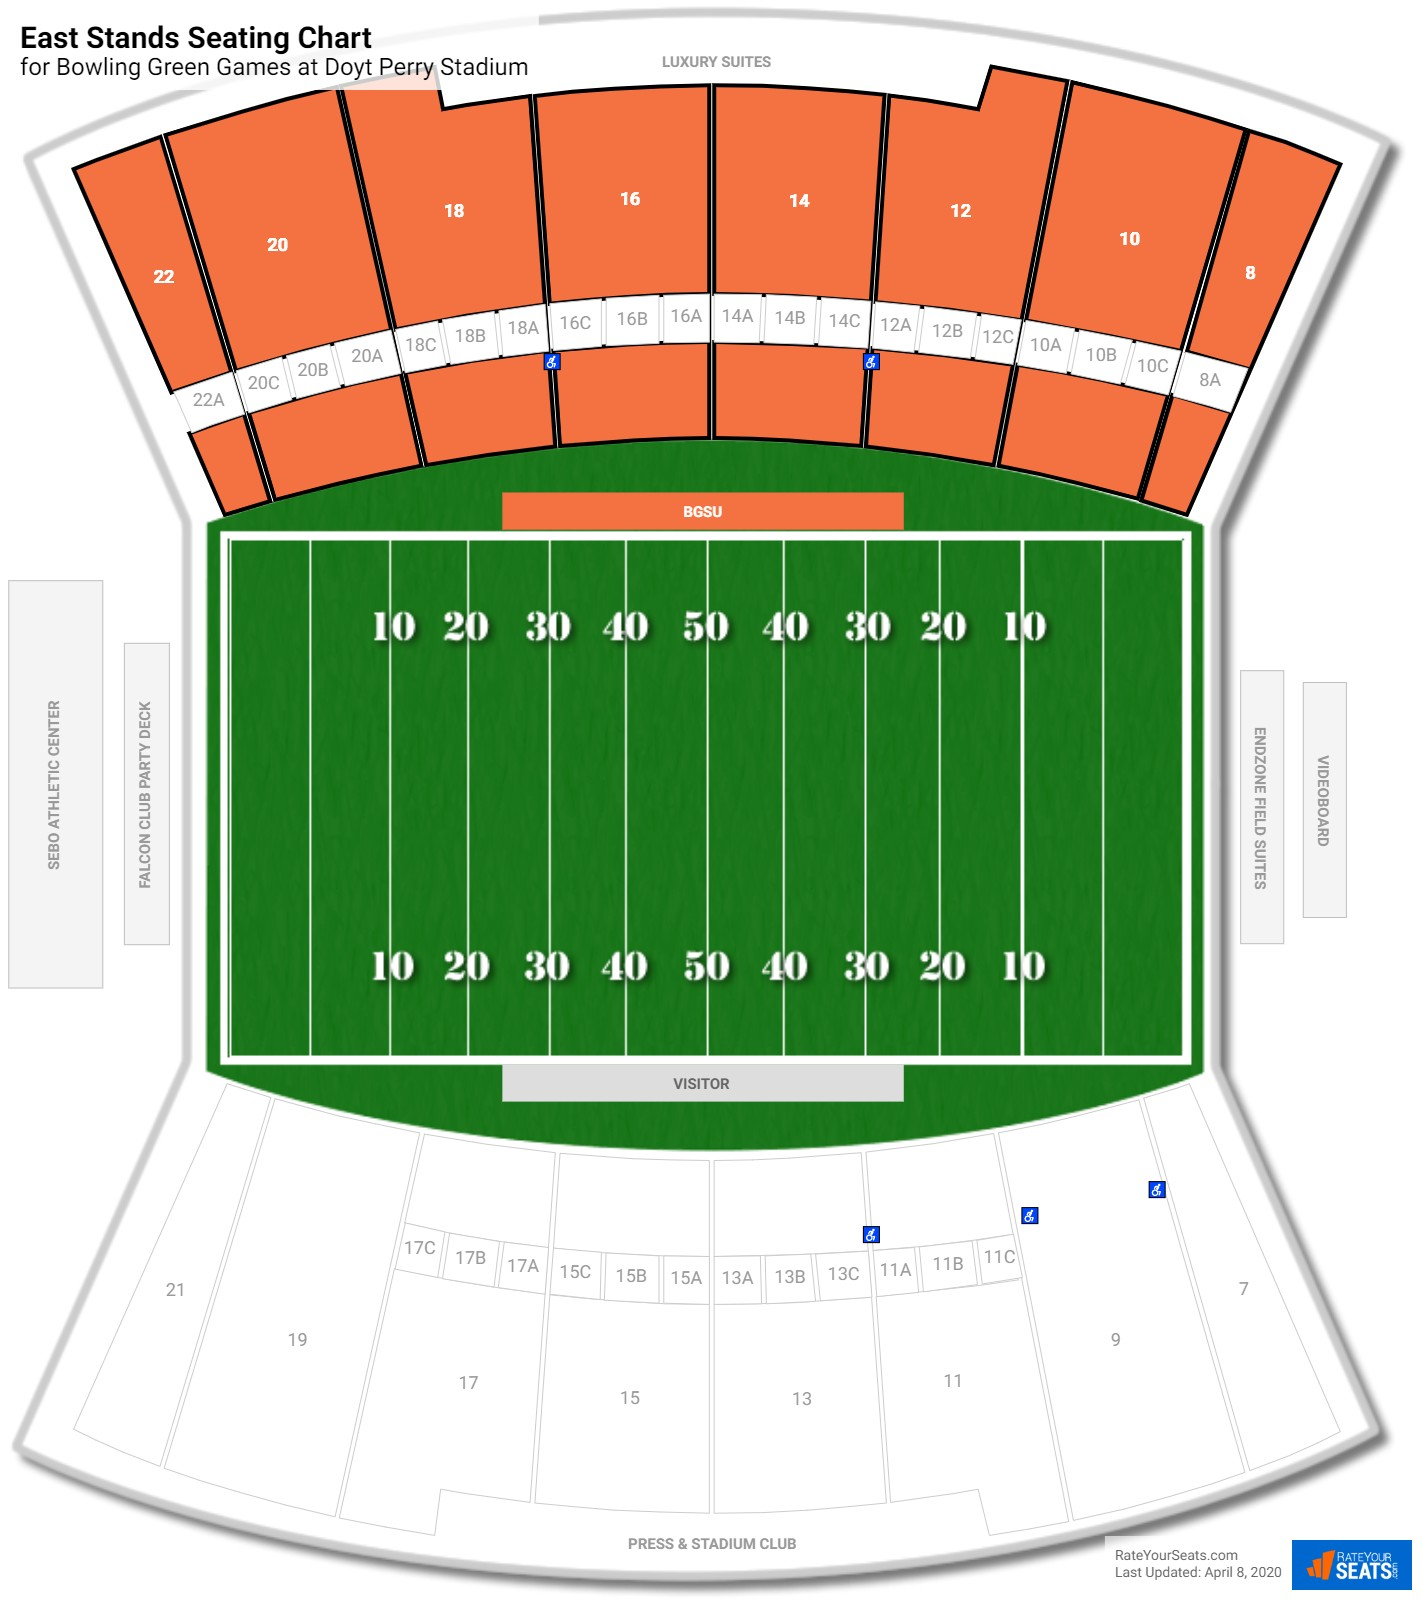 Doyt Perry Stadium East Stands seating chart